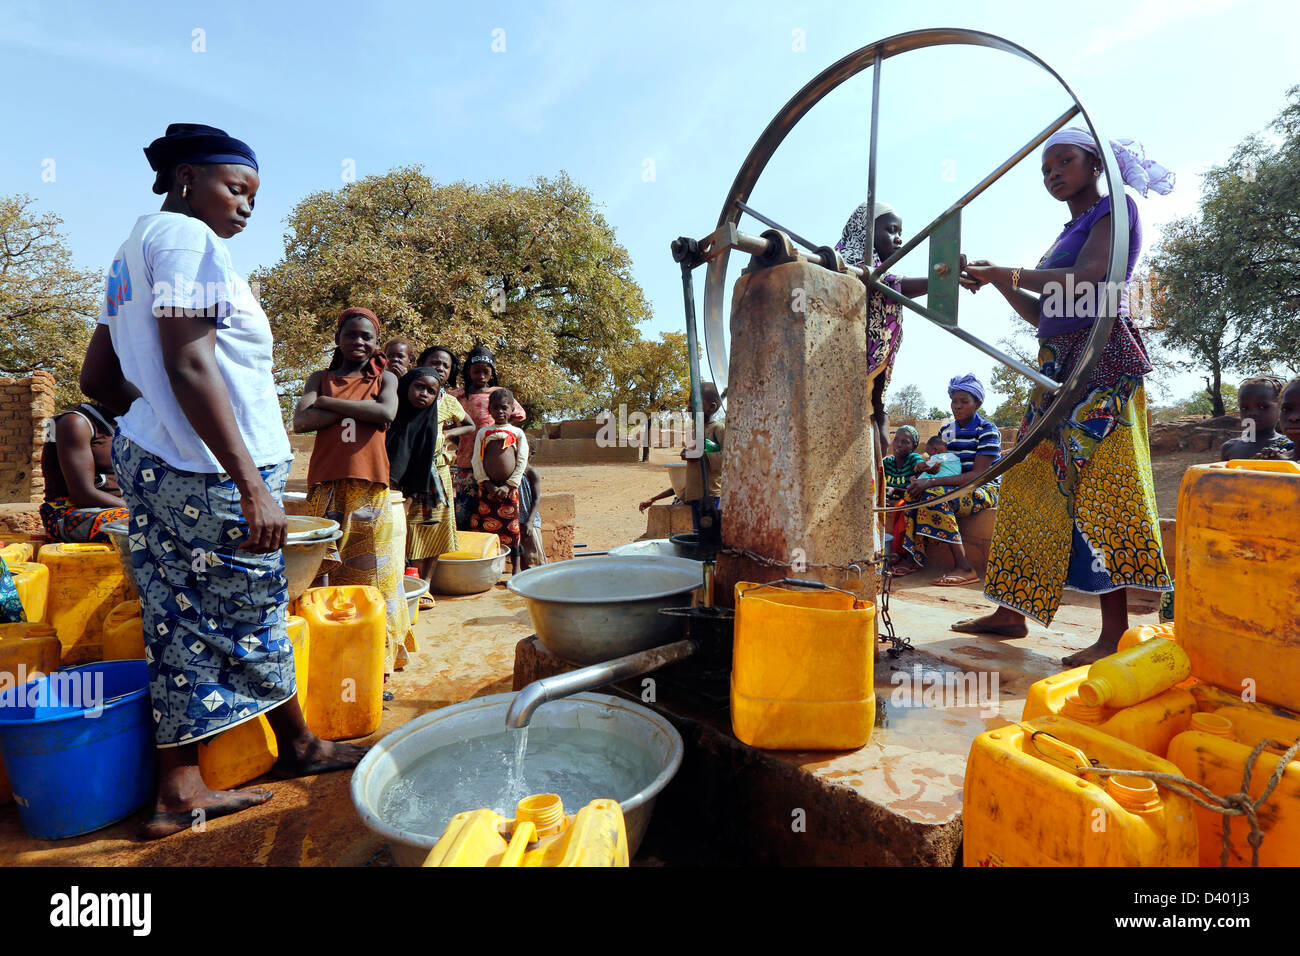 Women gather around the water pump of the village, Burkina Faso, Africa - Stock Image